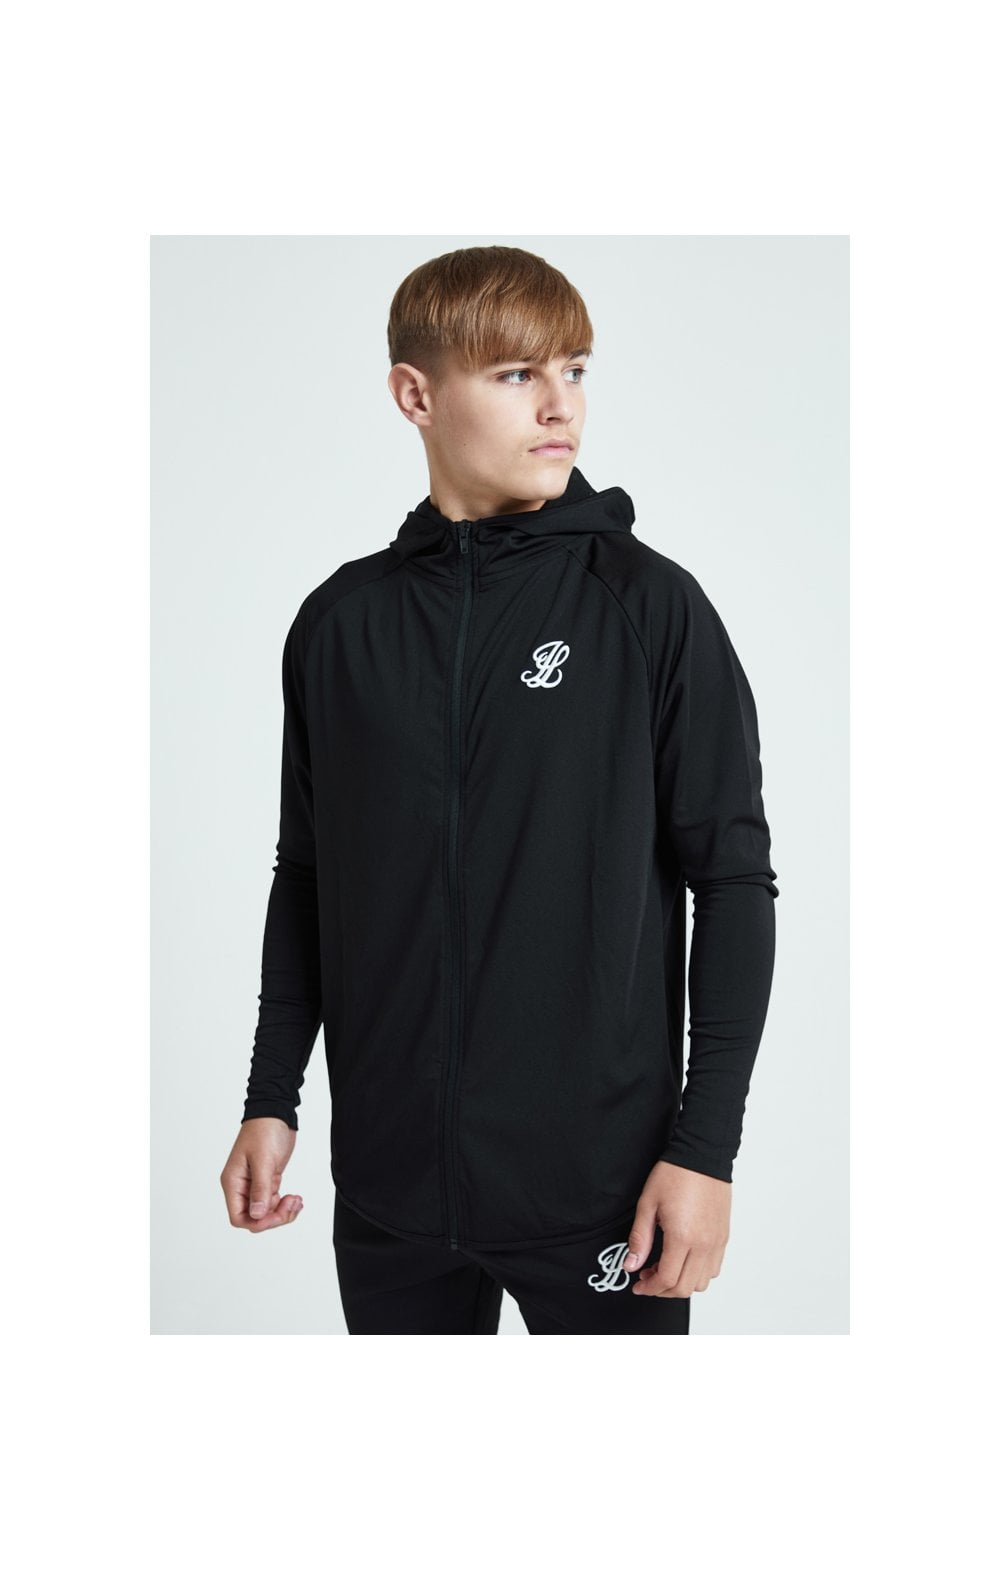 Illusive London Core Athlete Hoodie - Black (2)